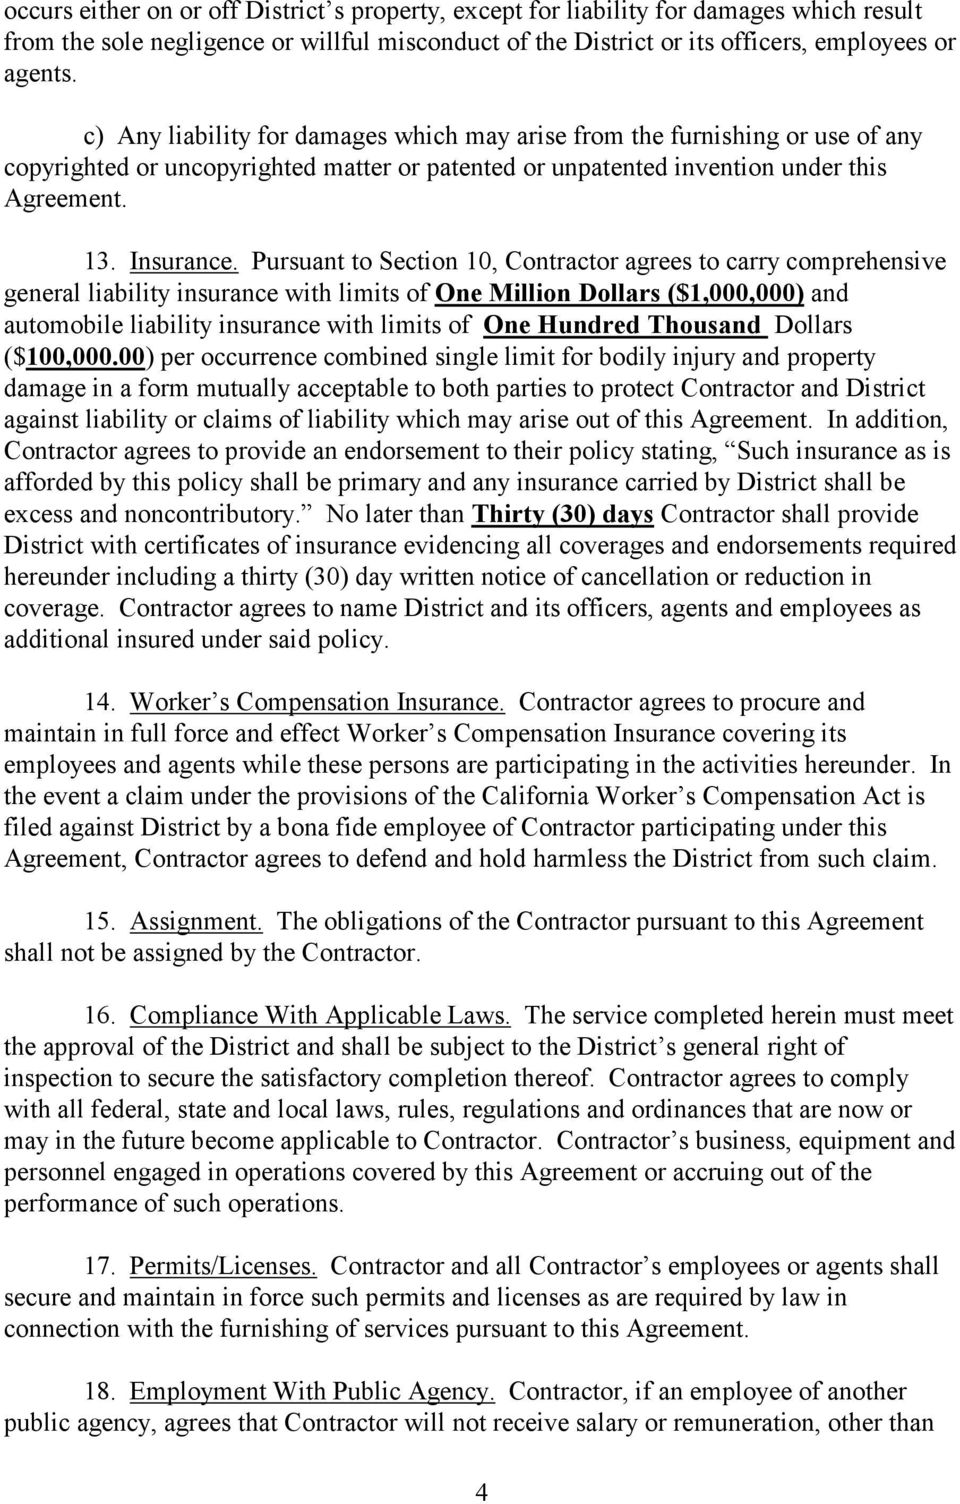 Pursuant to Section 10, Contractor agrees to carry comprehensive general liability insurance with limits of One Million Dollars ($1,000,000) and automobile liability insurance with limits of One